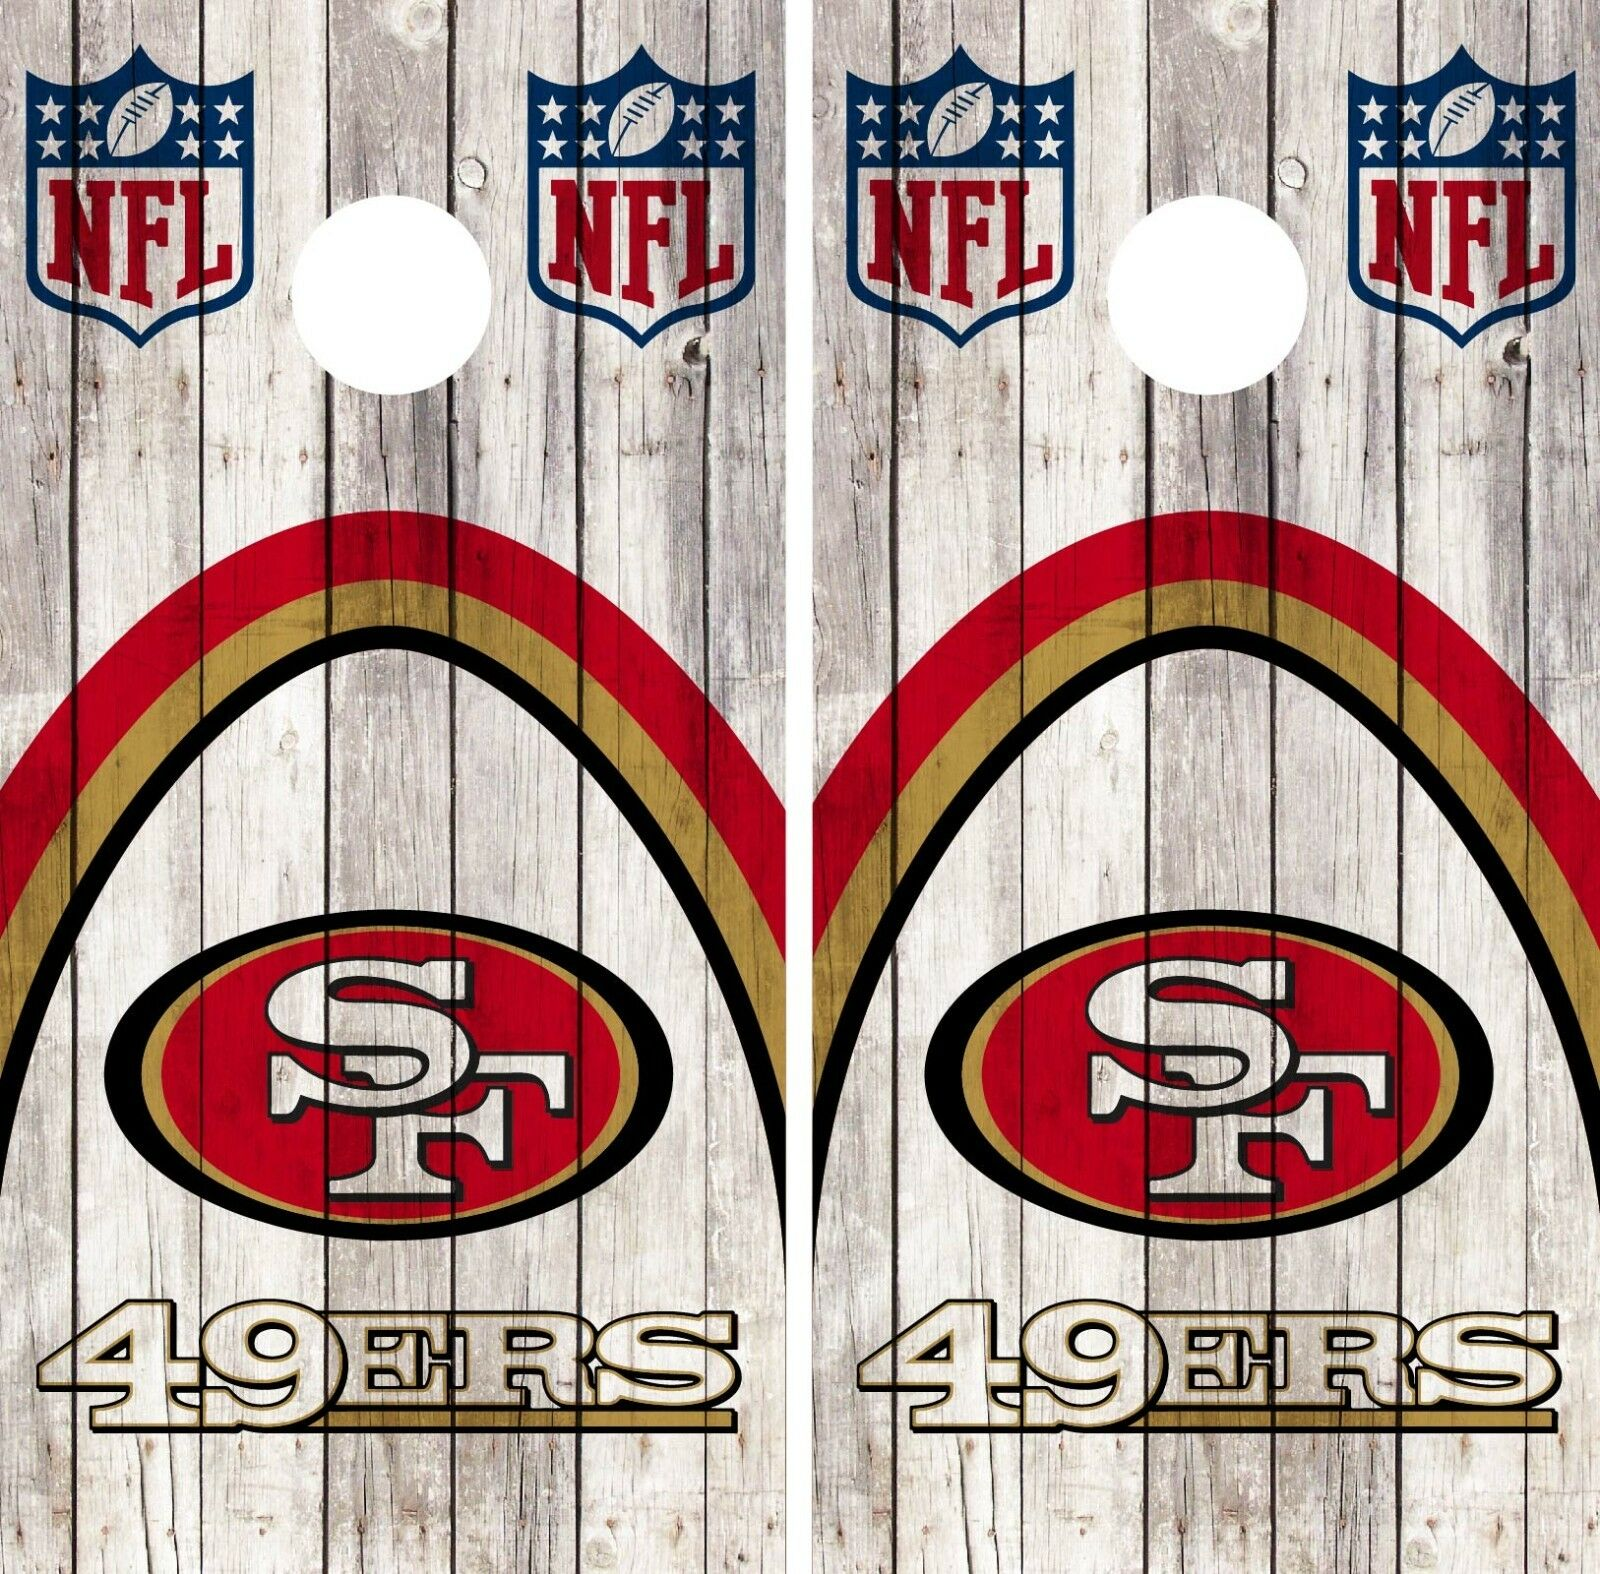 San Francisco 49ERS Cornhole Wrap NFL Wood Game Skin Board  Set Vinyl Art CO115  up to 60% off